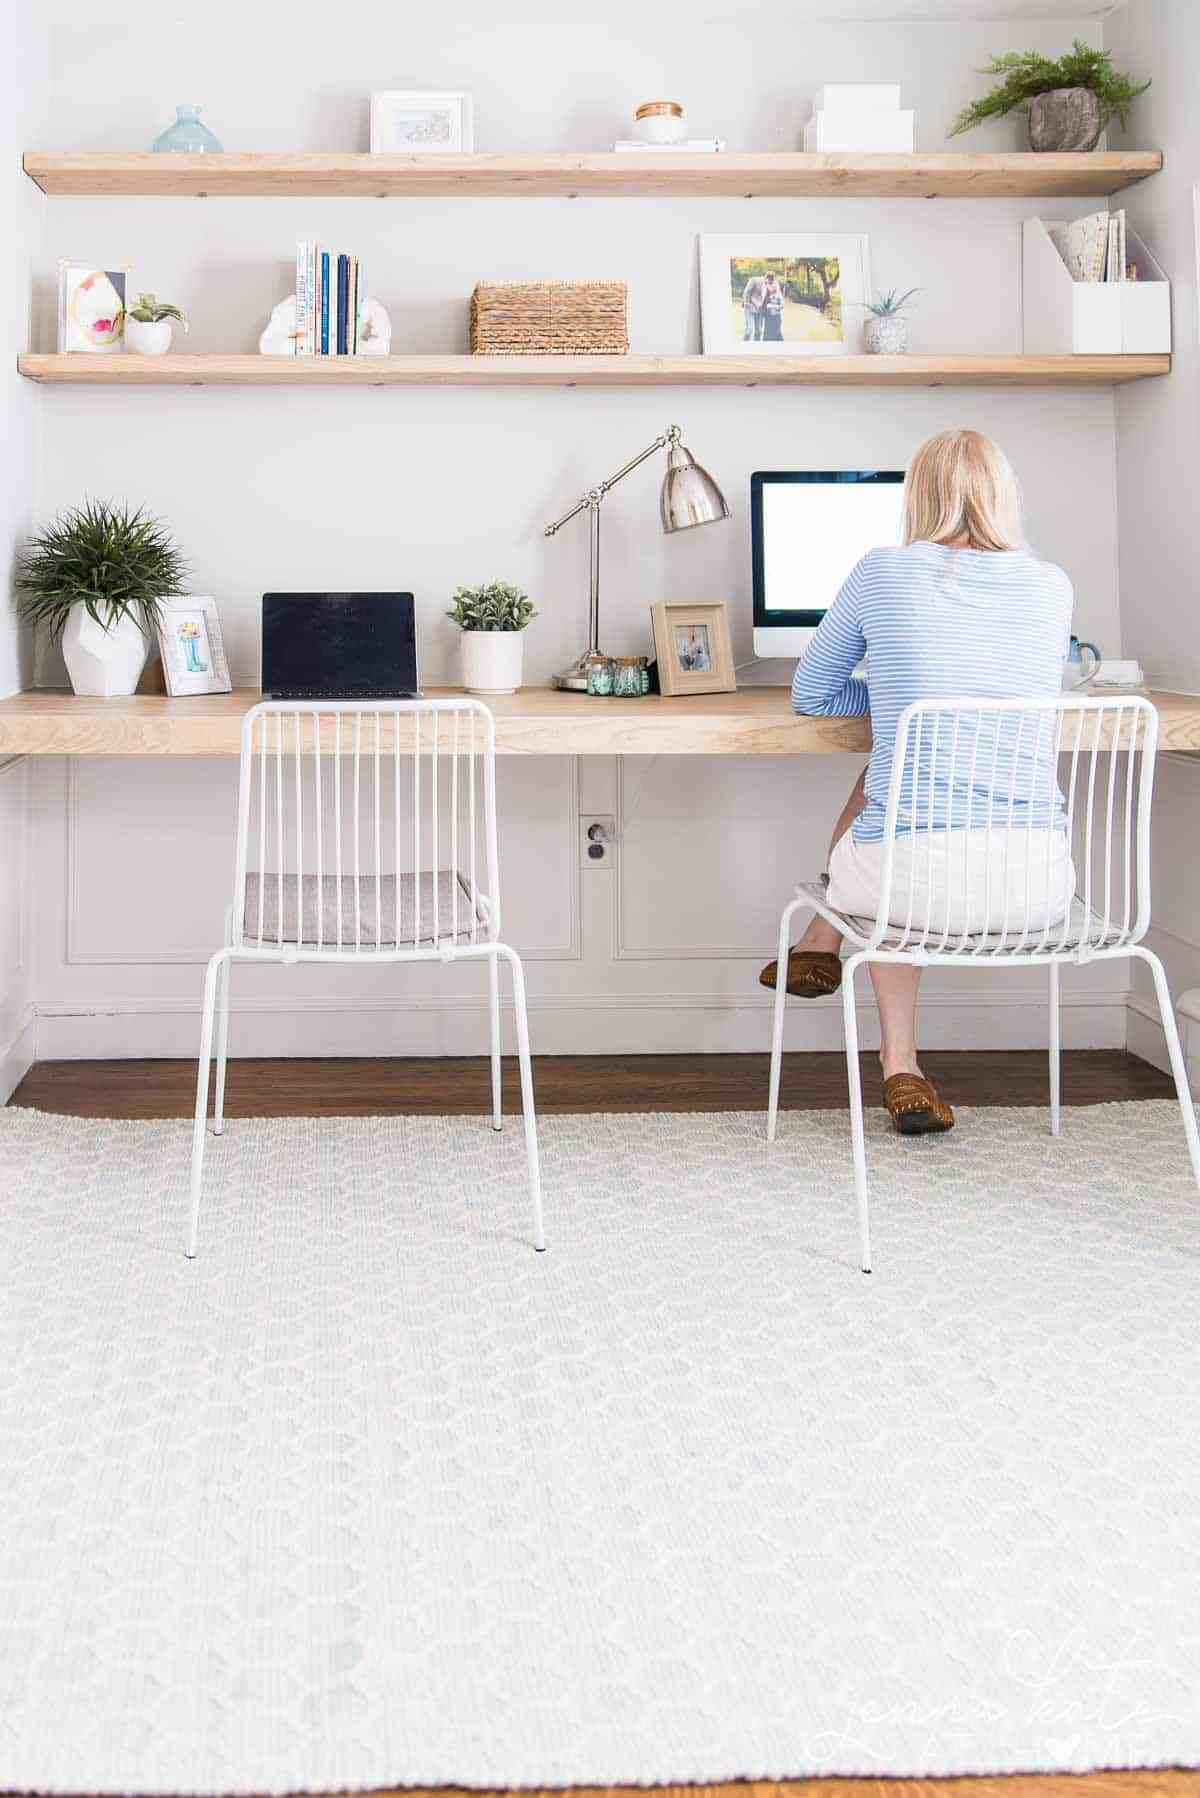 Work from home office space with DIY desk and floating shelves